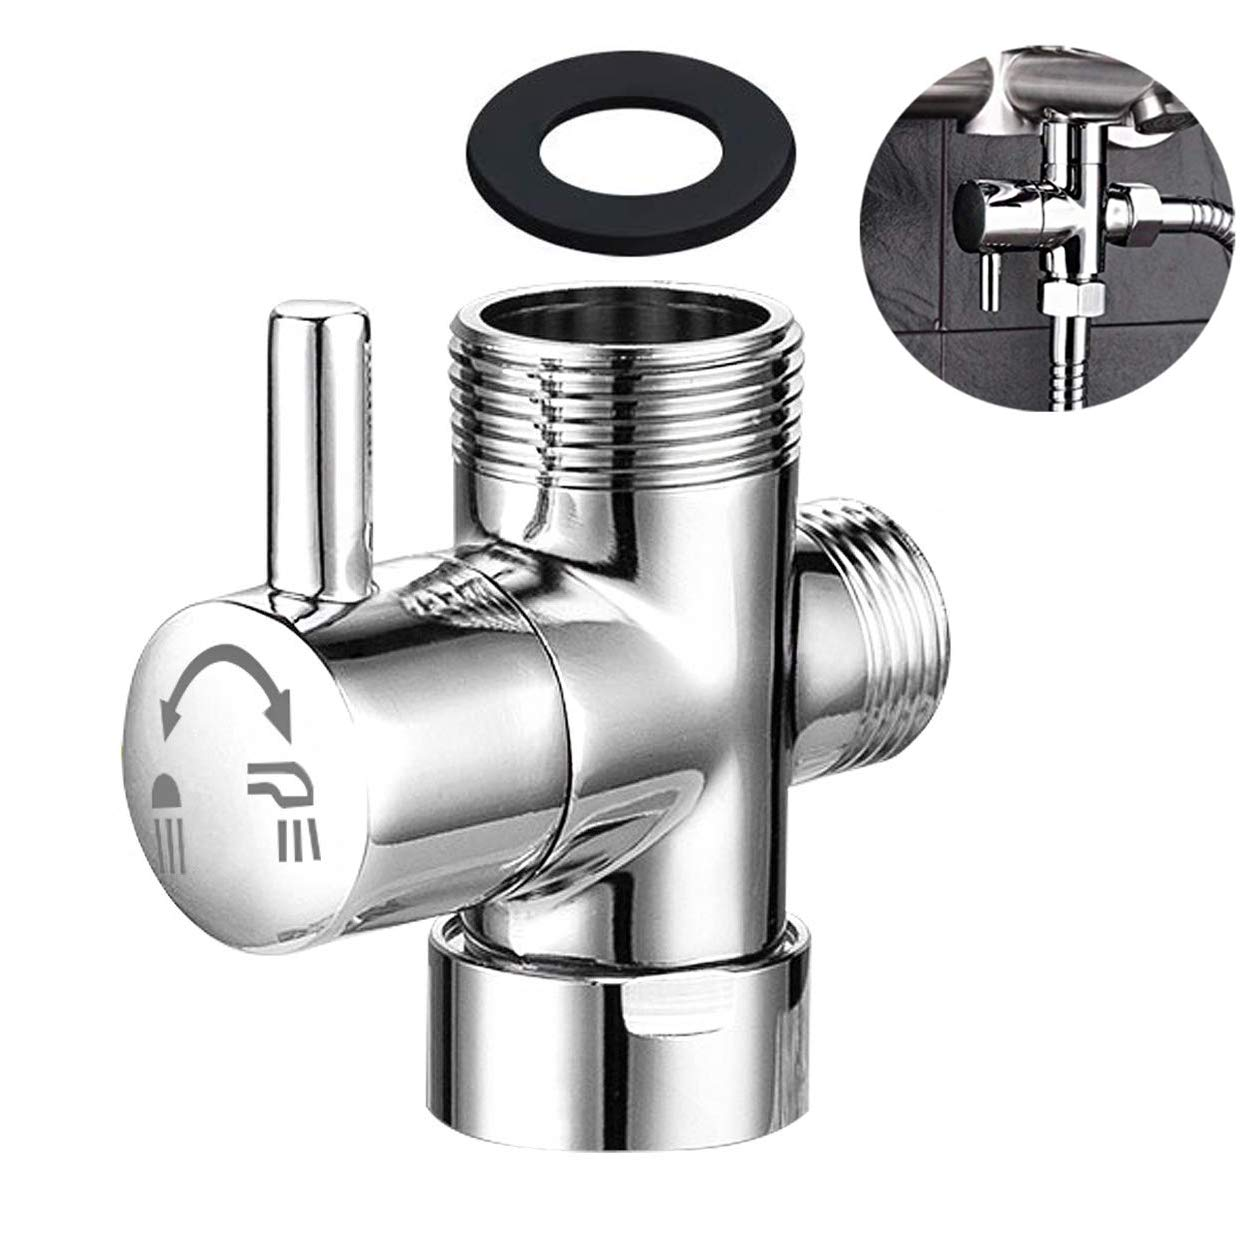 Shower Arm Diverter for Hand Shower, G 1/2 3-Way Shower Head Diverter Valve for Hand Held Showerhead and Fixed Spray Head - Bathroom Universal Shower System Replacement Part (Chrome Diverter) by Hometing